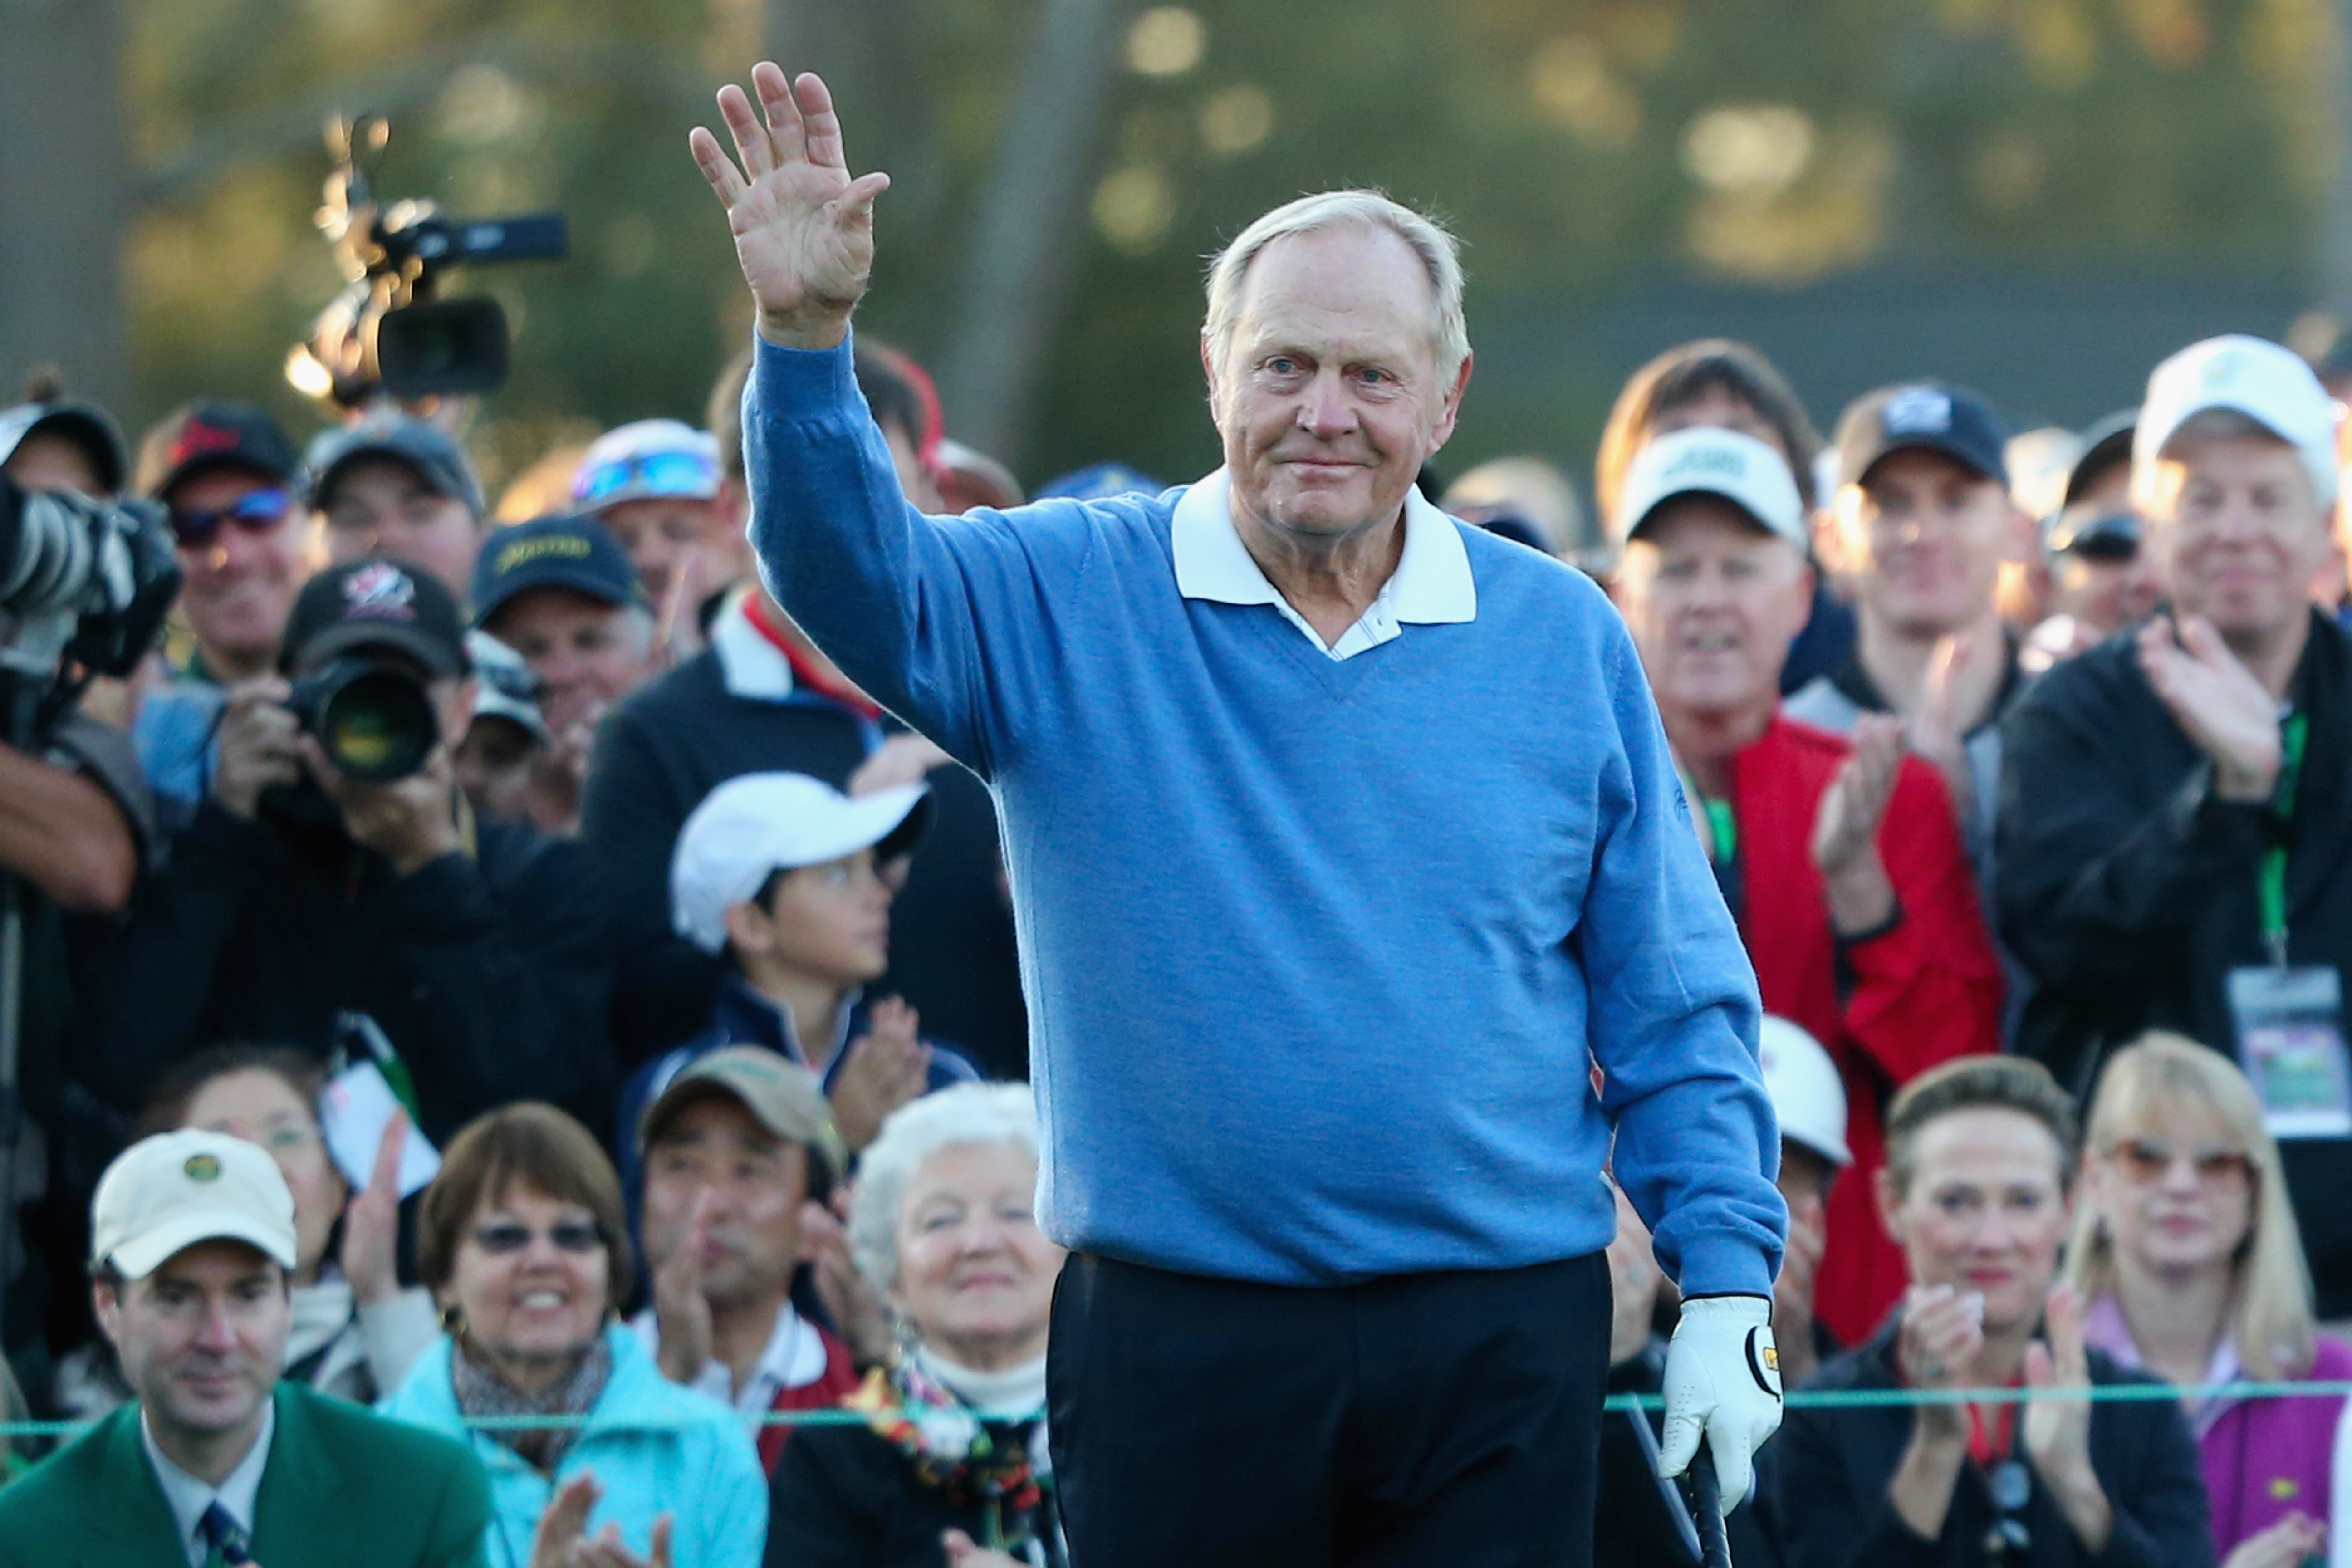 Jack Nicklaus acknowledges the crowd on the first tee at Augusta National at the start of the 2014 Masters.